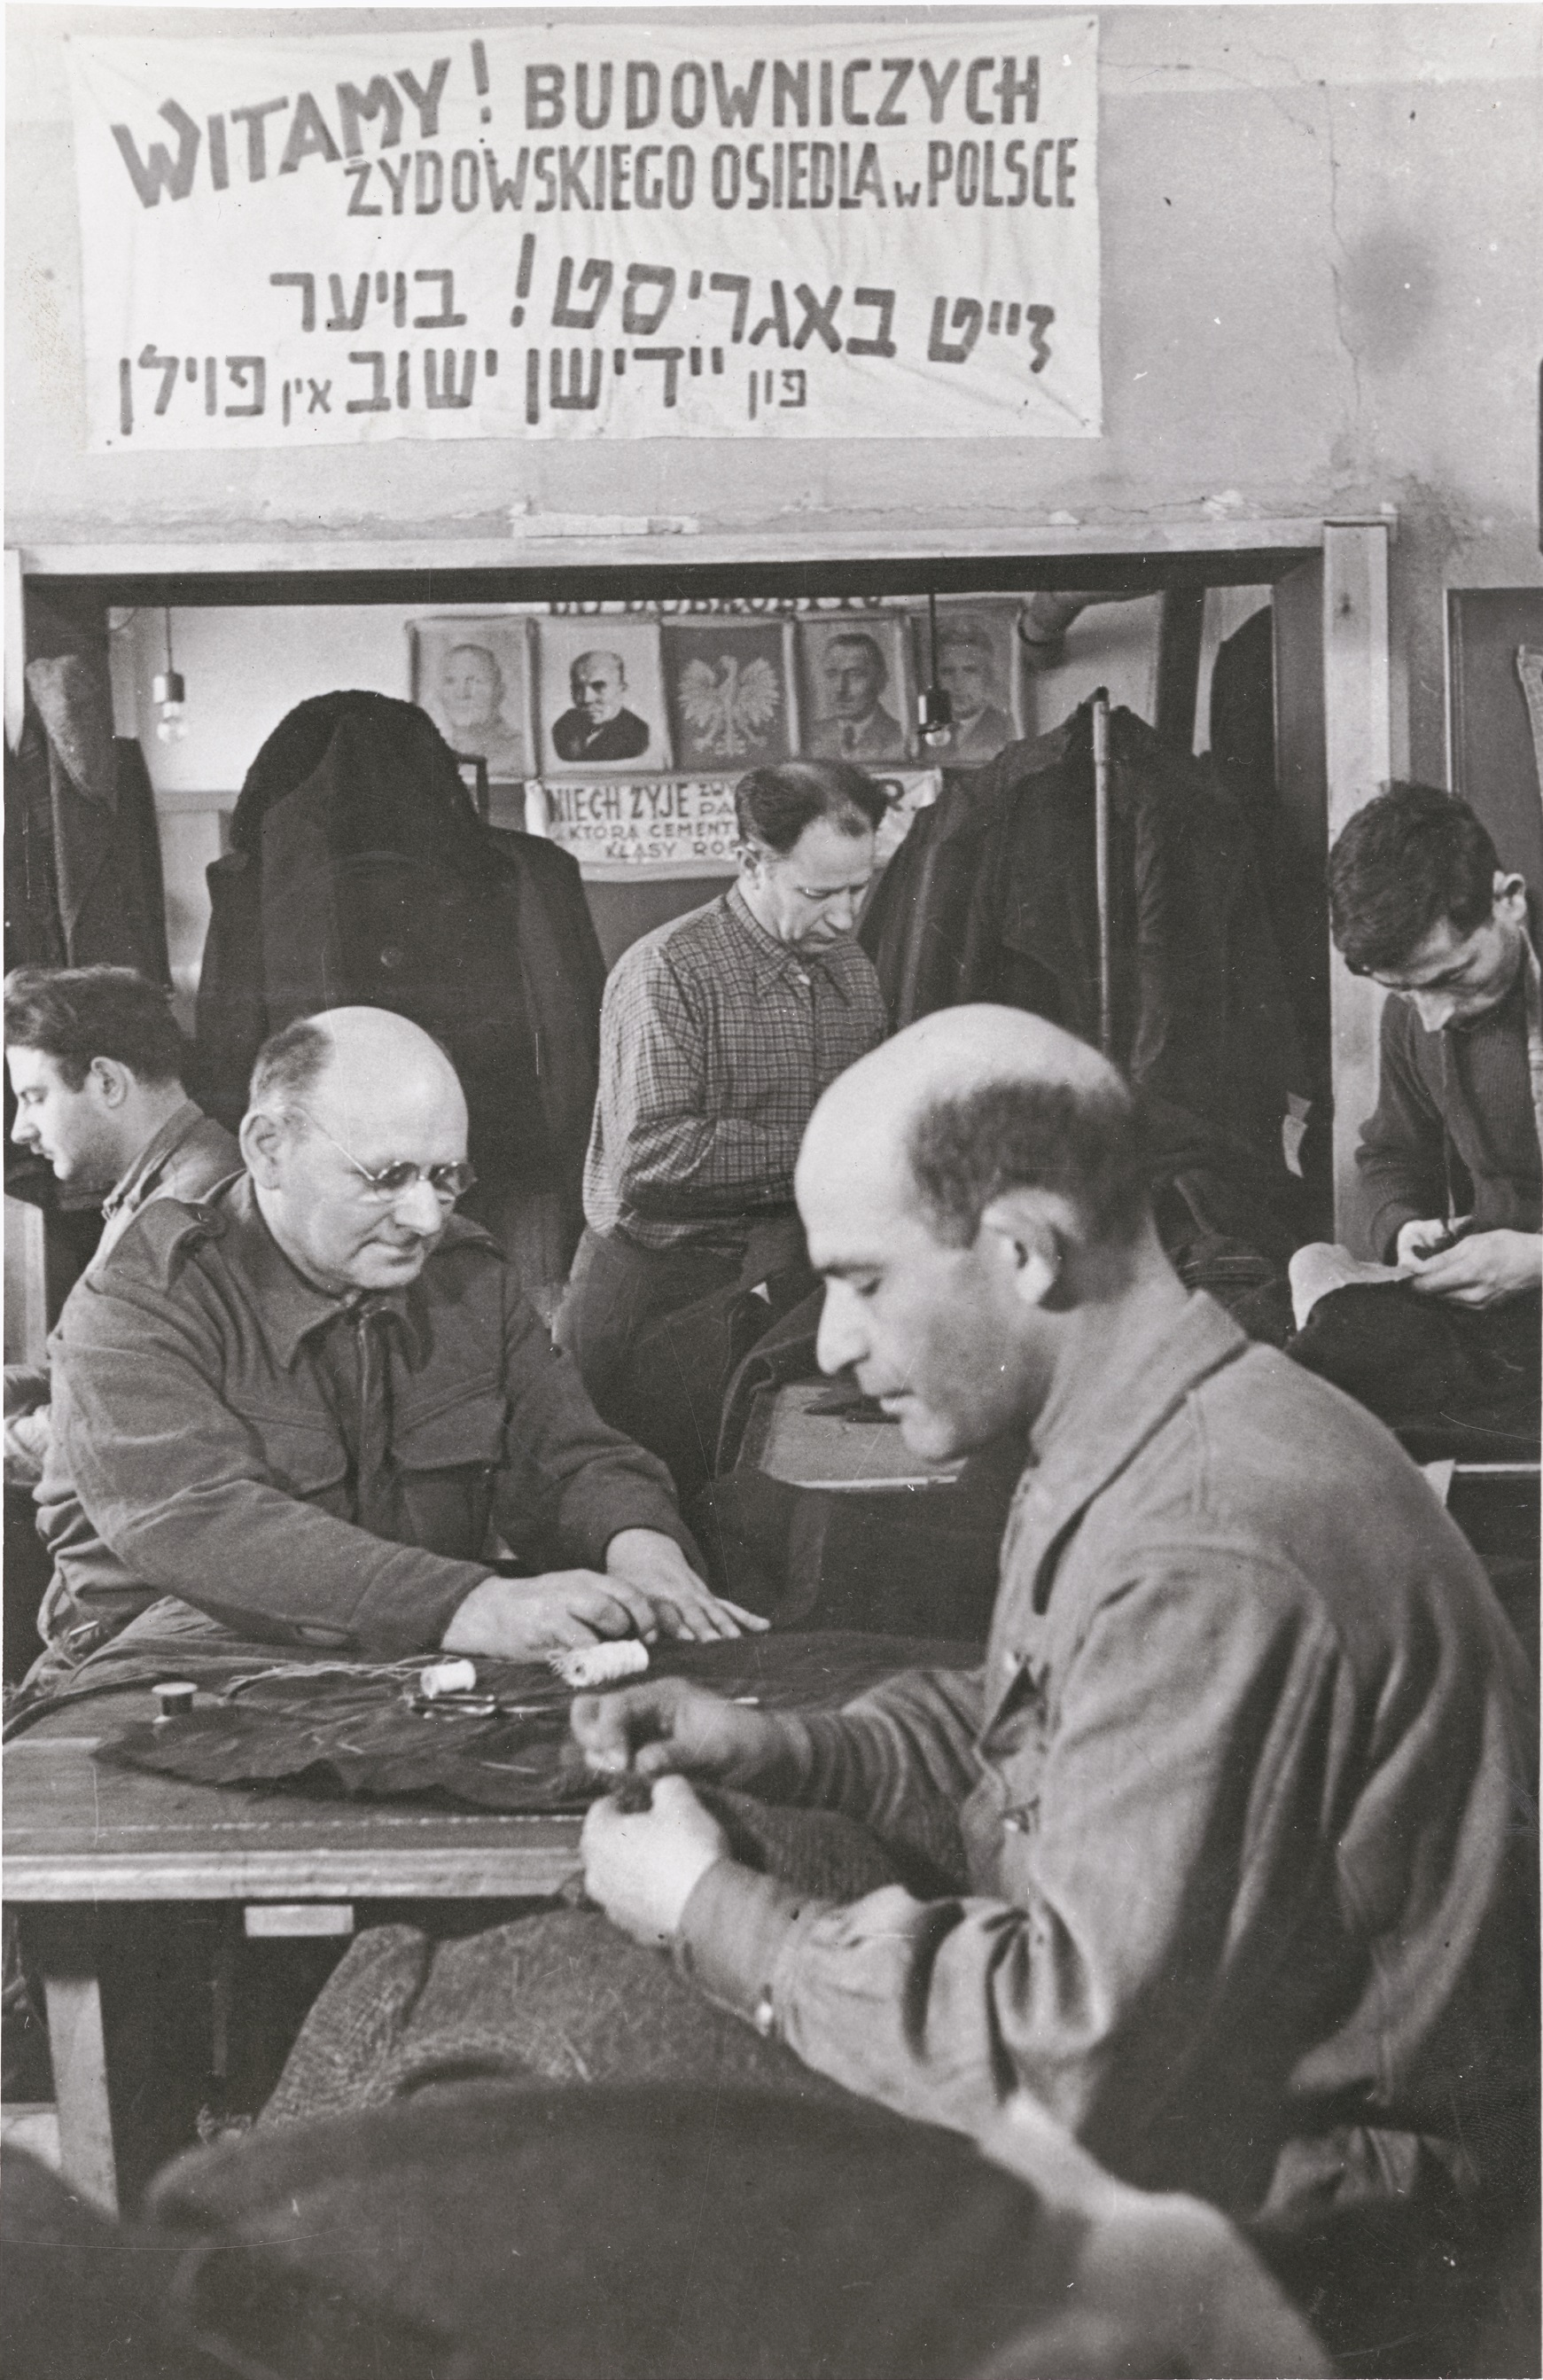 """Polish Jews, among them repatriates, work in a tailor shop with a sign that reads in Polish and Yiddish, """"Welcome! Building of the Jewish Community in Poland,"""" Dzieroniow, 1946. After World War II, Dzieroniow, in Lower Silesia, became a major Jewish resettlement center. Survivors went there to begin new lives."""